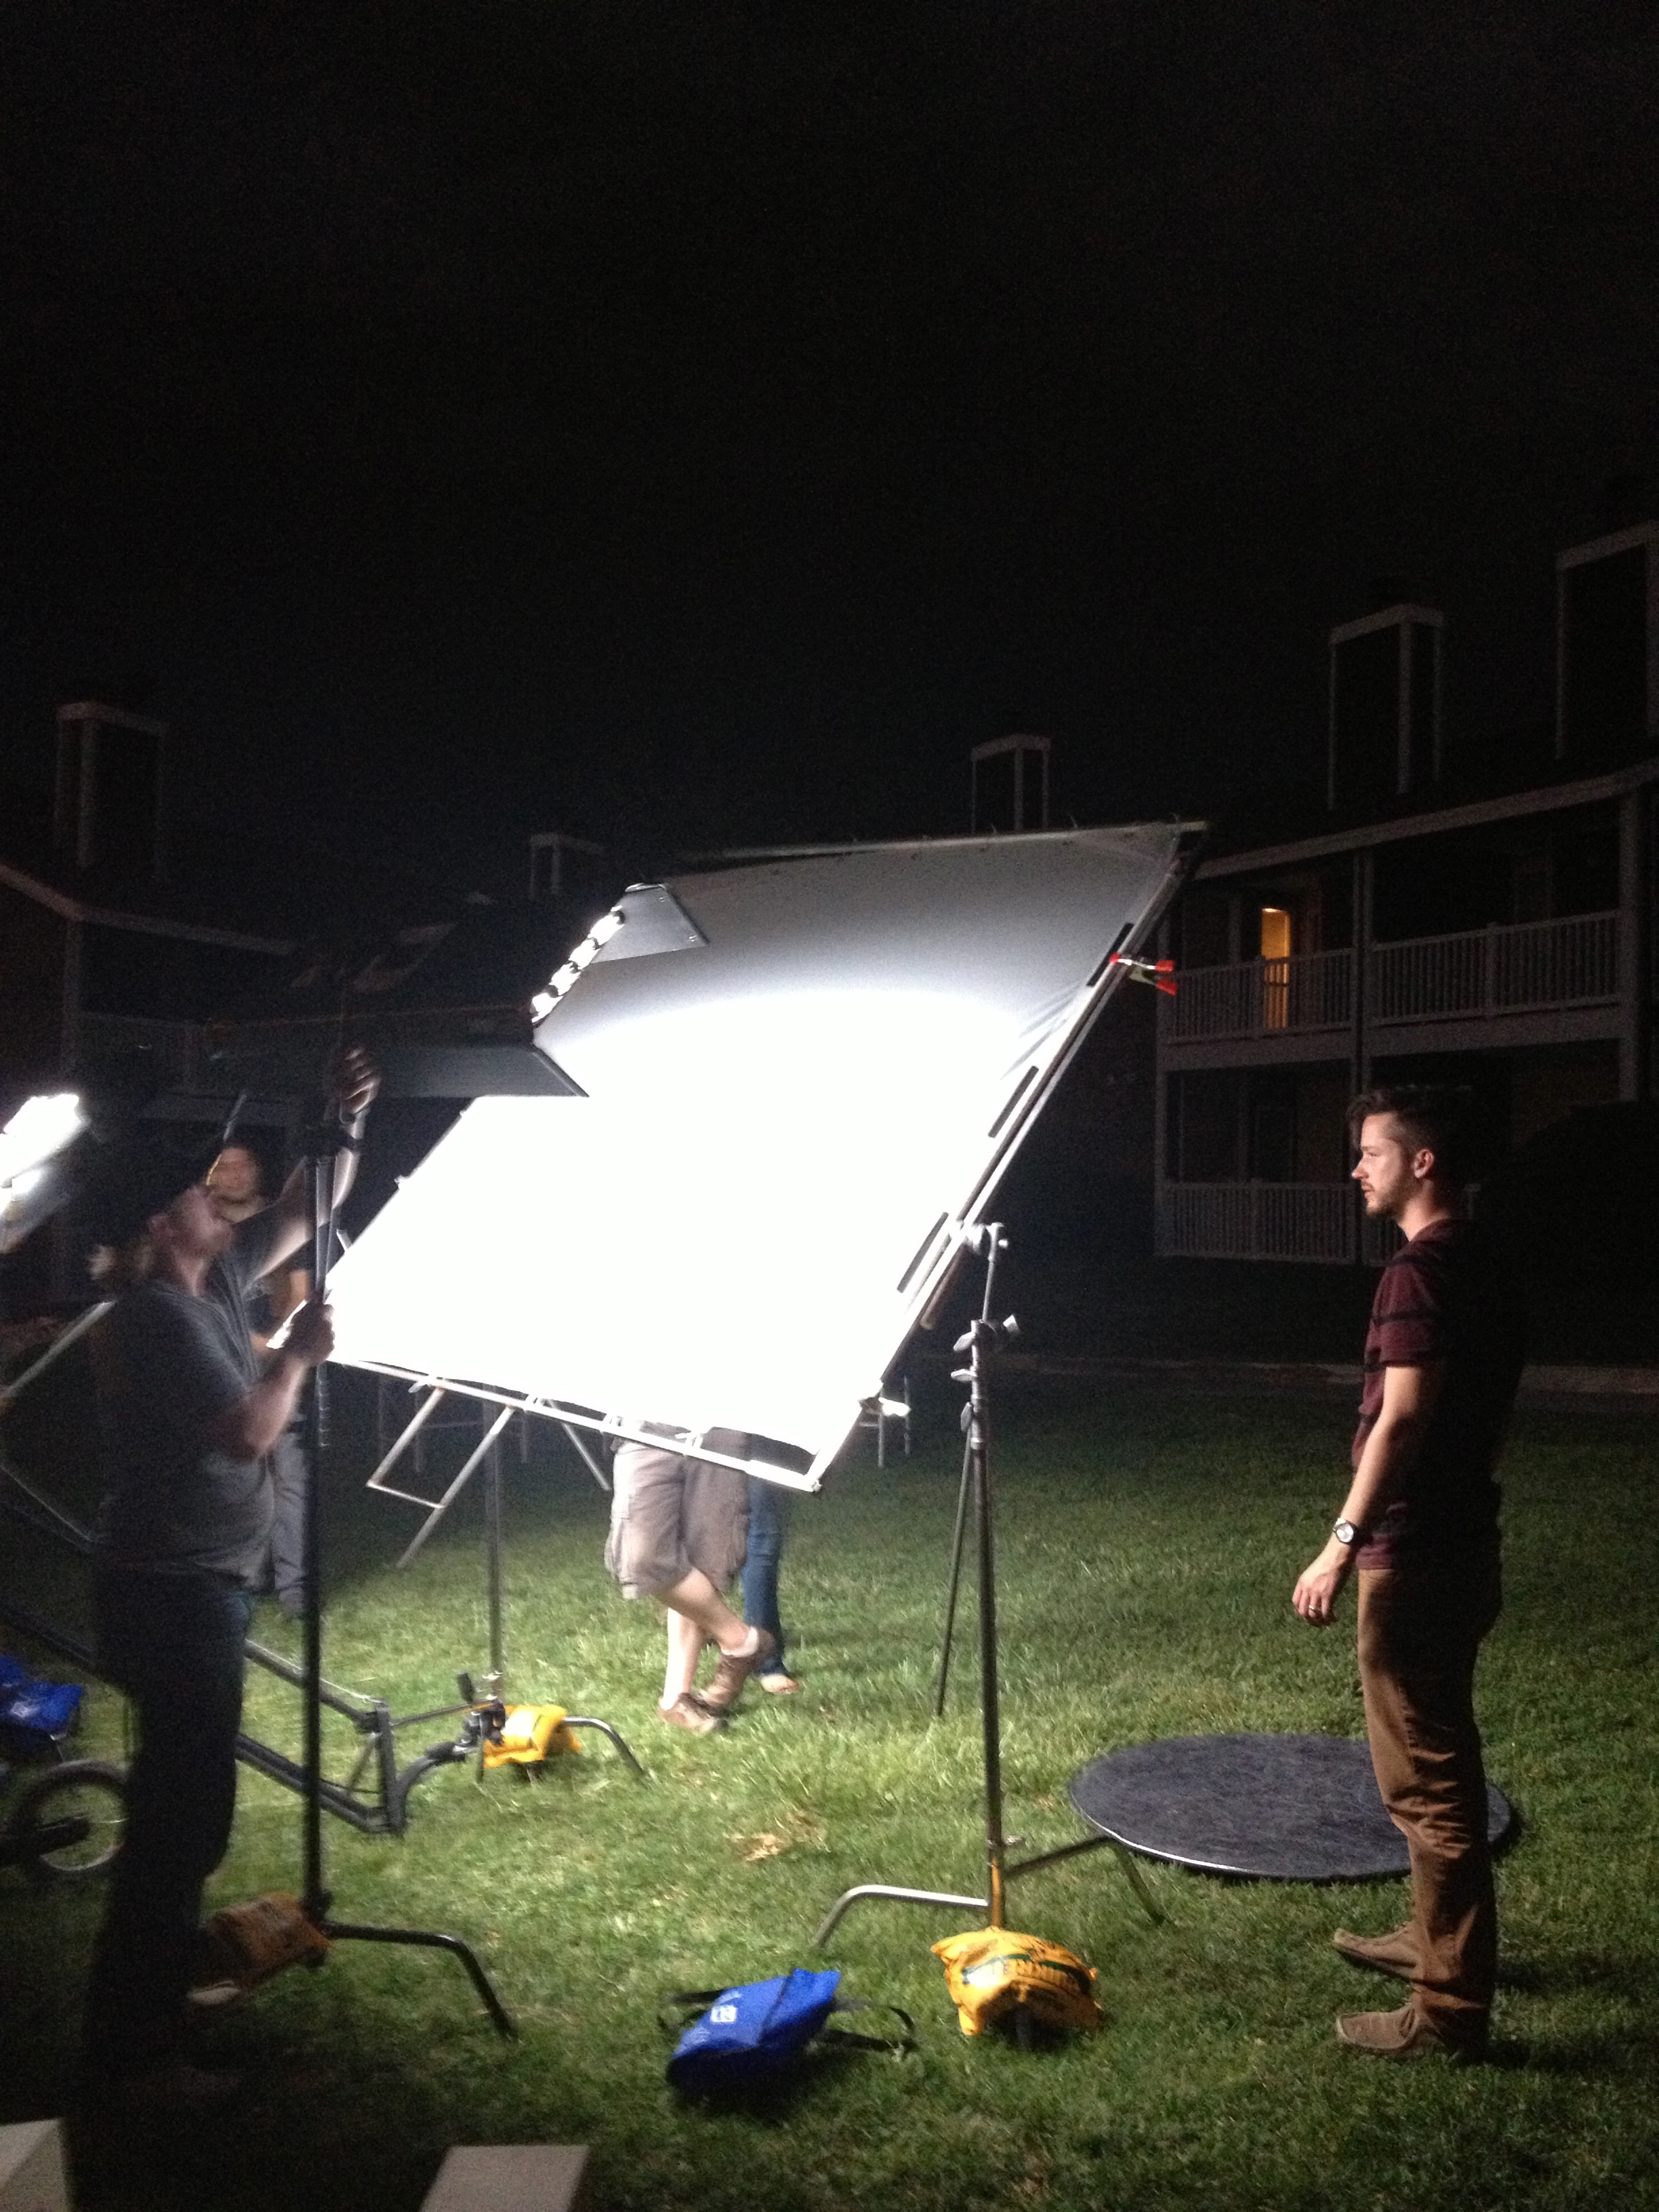 Our entire crew was amazing during this shoot. In this photo, we were racing against a thunderstorm to get the last shot of the day.